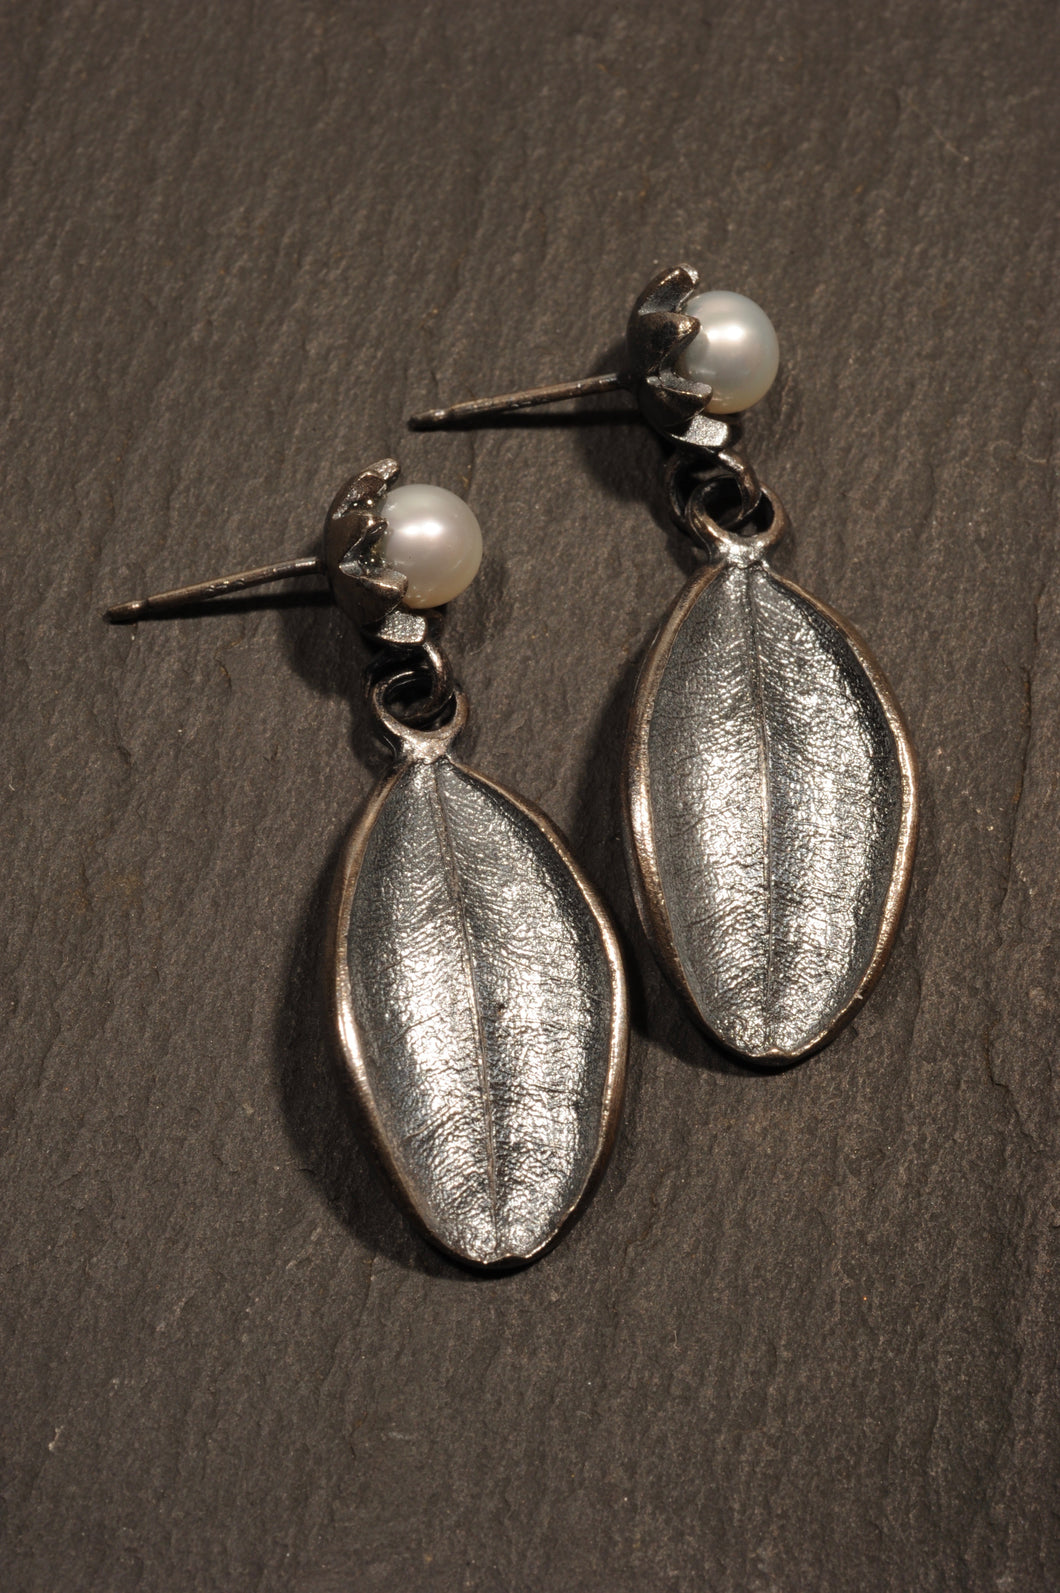 laurel earrings with flores